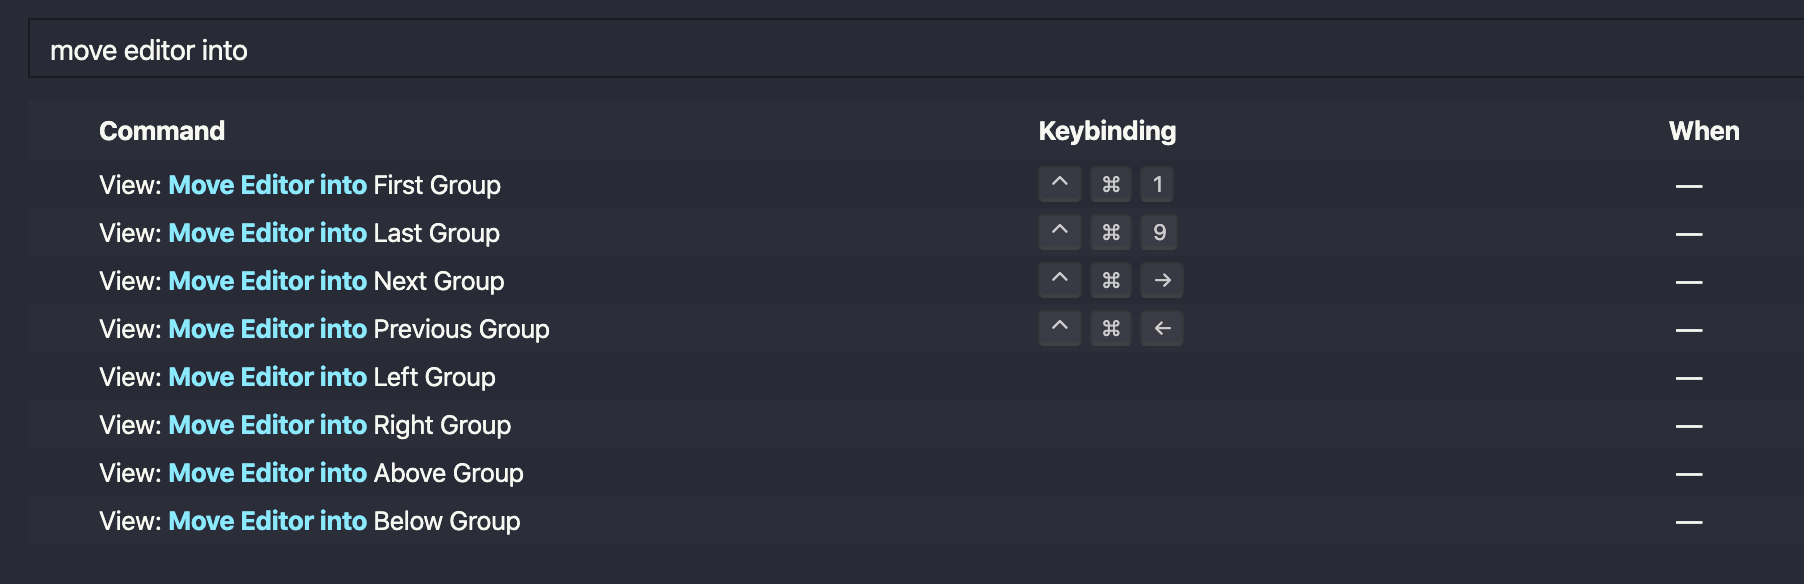 Searched for Move editor into in the keyboarh shortcuts panel.